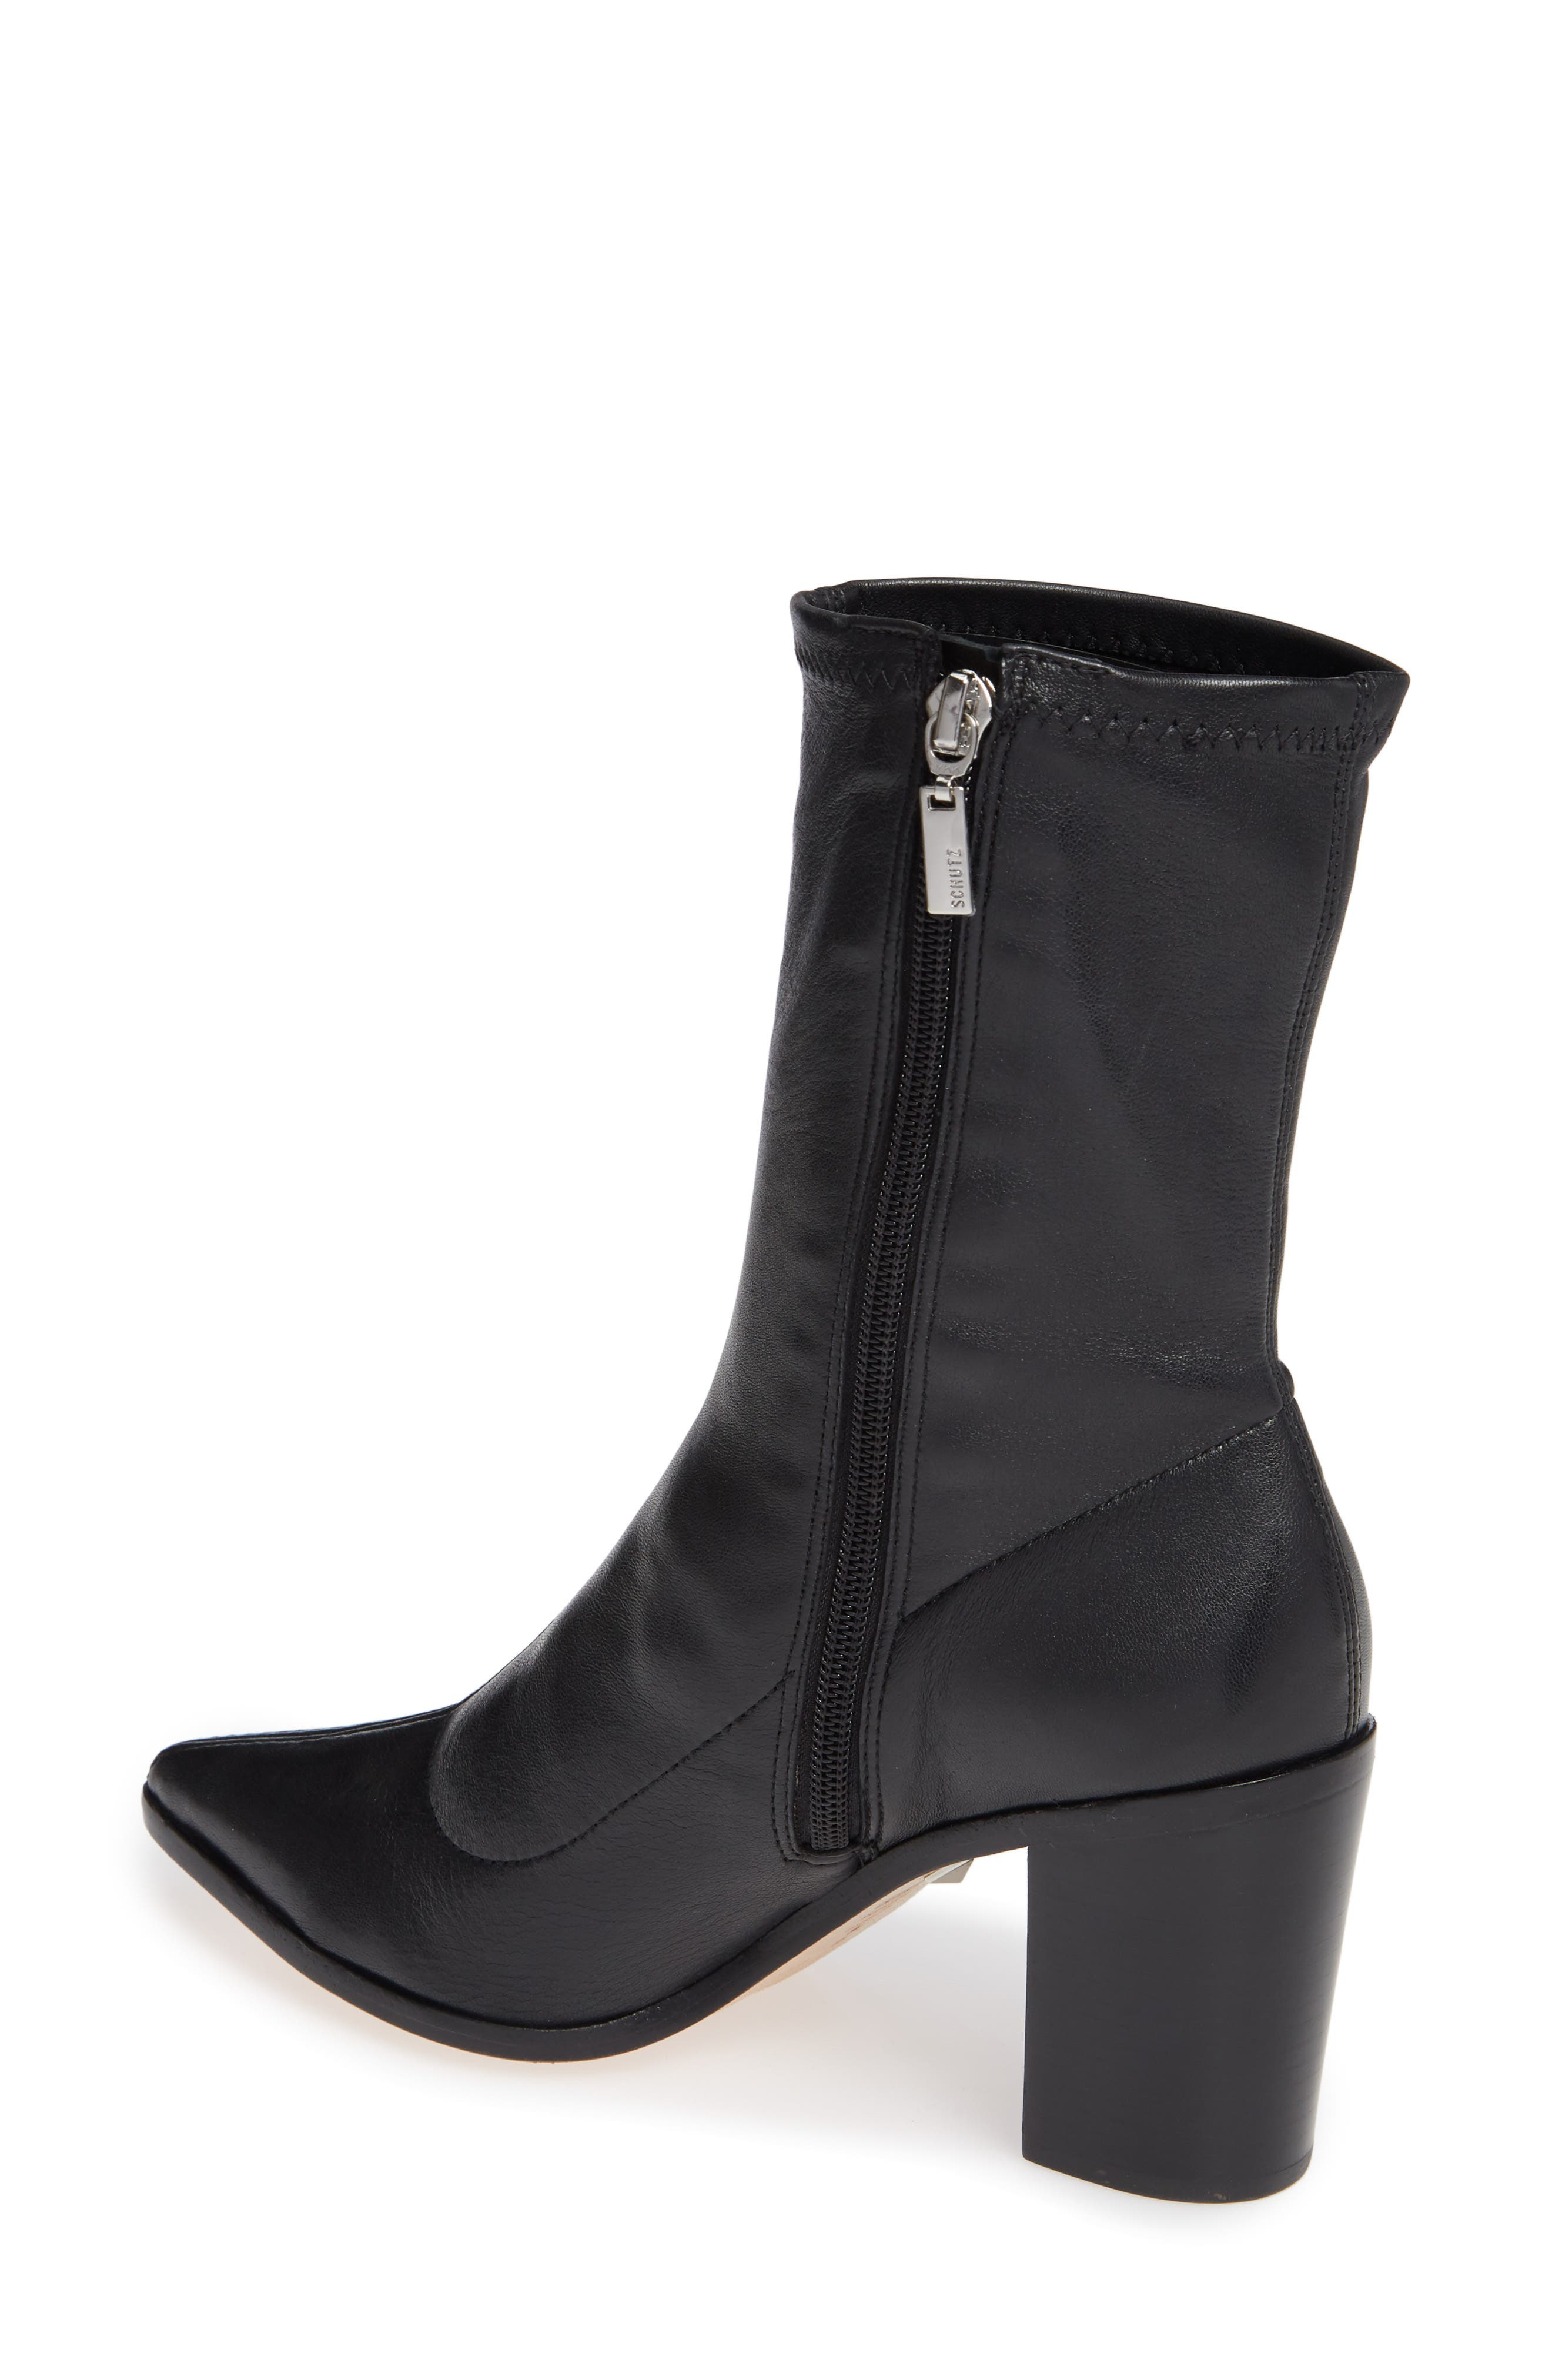 Amellie Pointy Toe Bootie,                             Alternate thumbnail 2, color,                             BLACK LEATHER